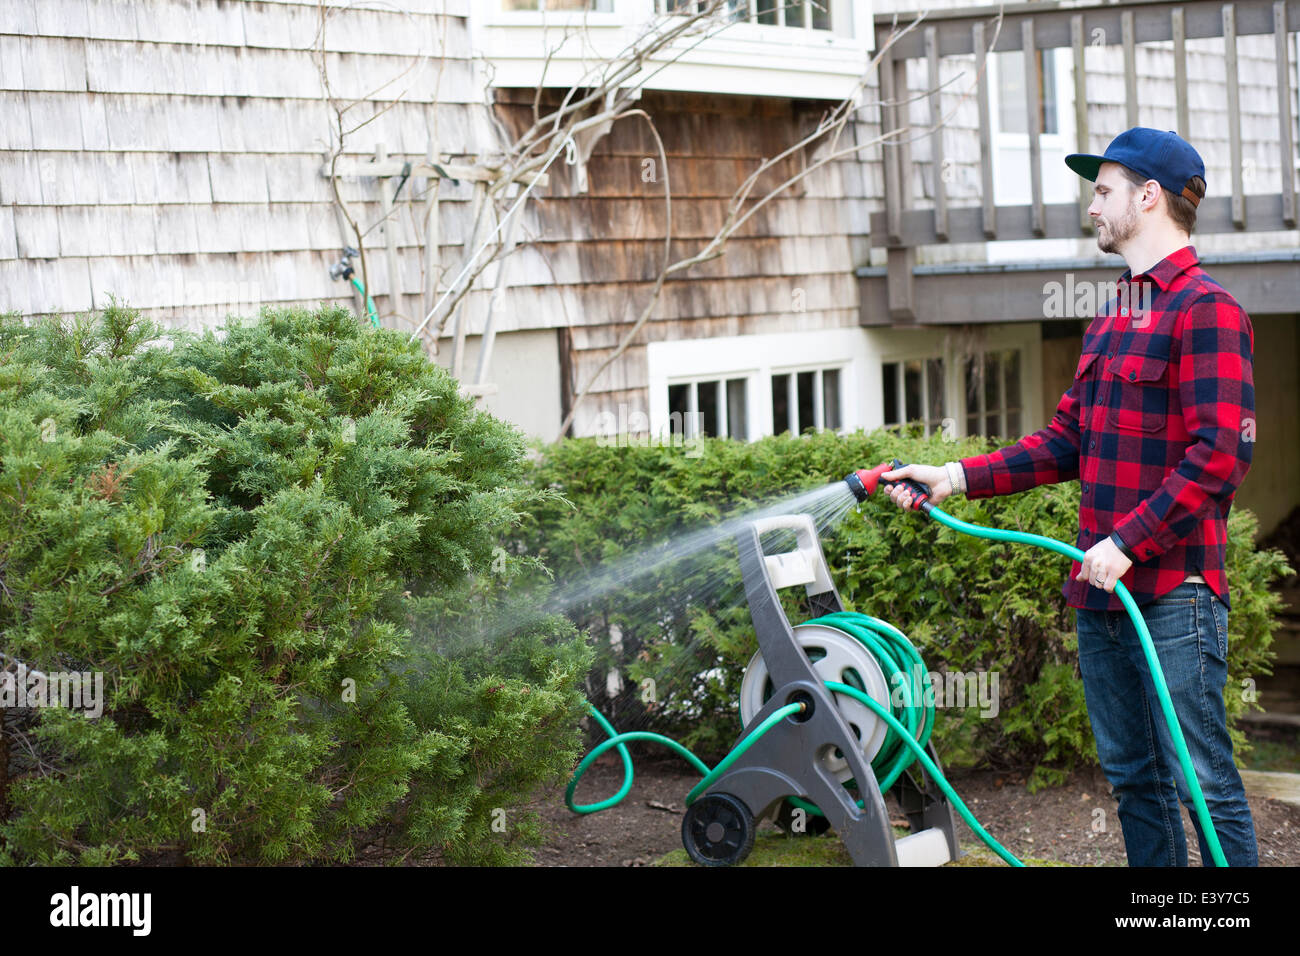 Mid adult man watering plants with hosepipe in garden - Stock Image